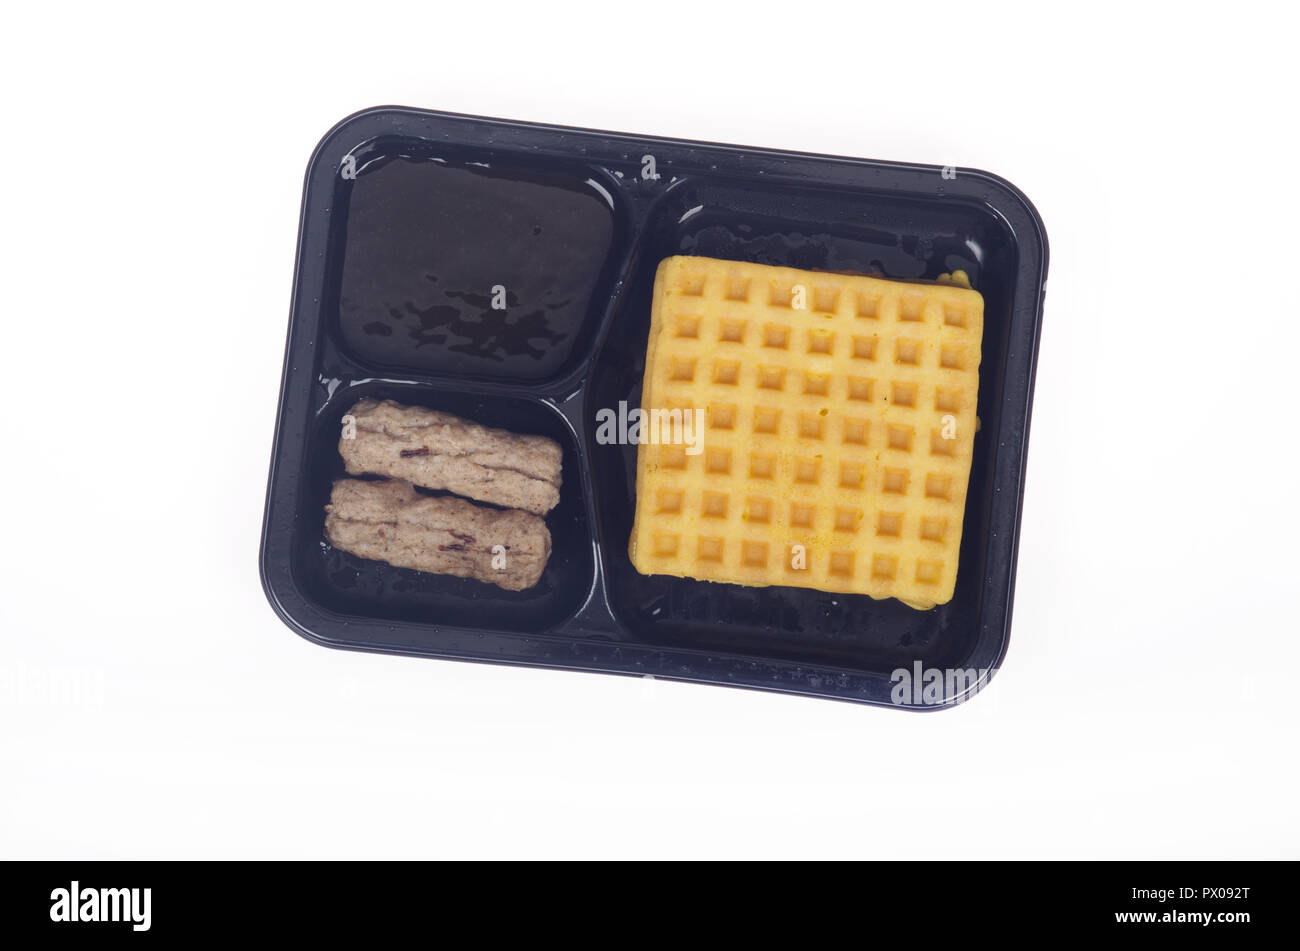 Microwave freezer breakfast meal of waffles with syrup and sausages - Stock Image